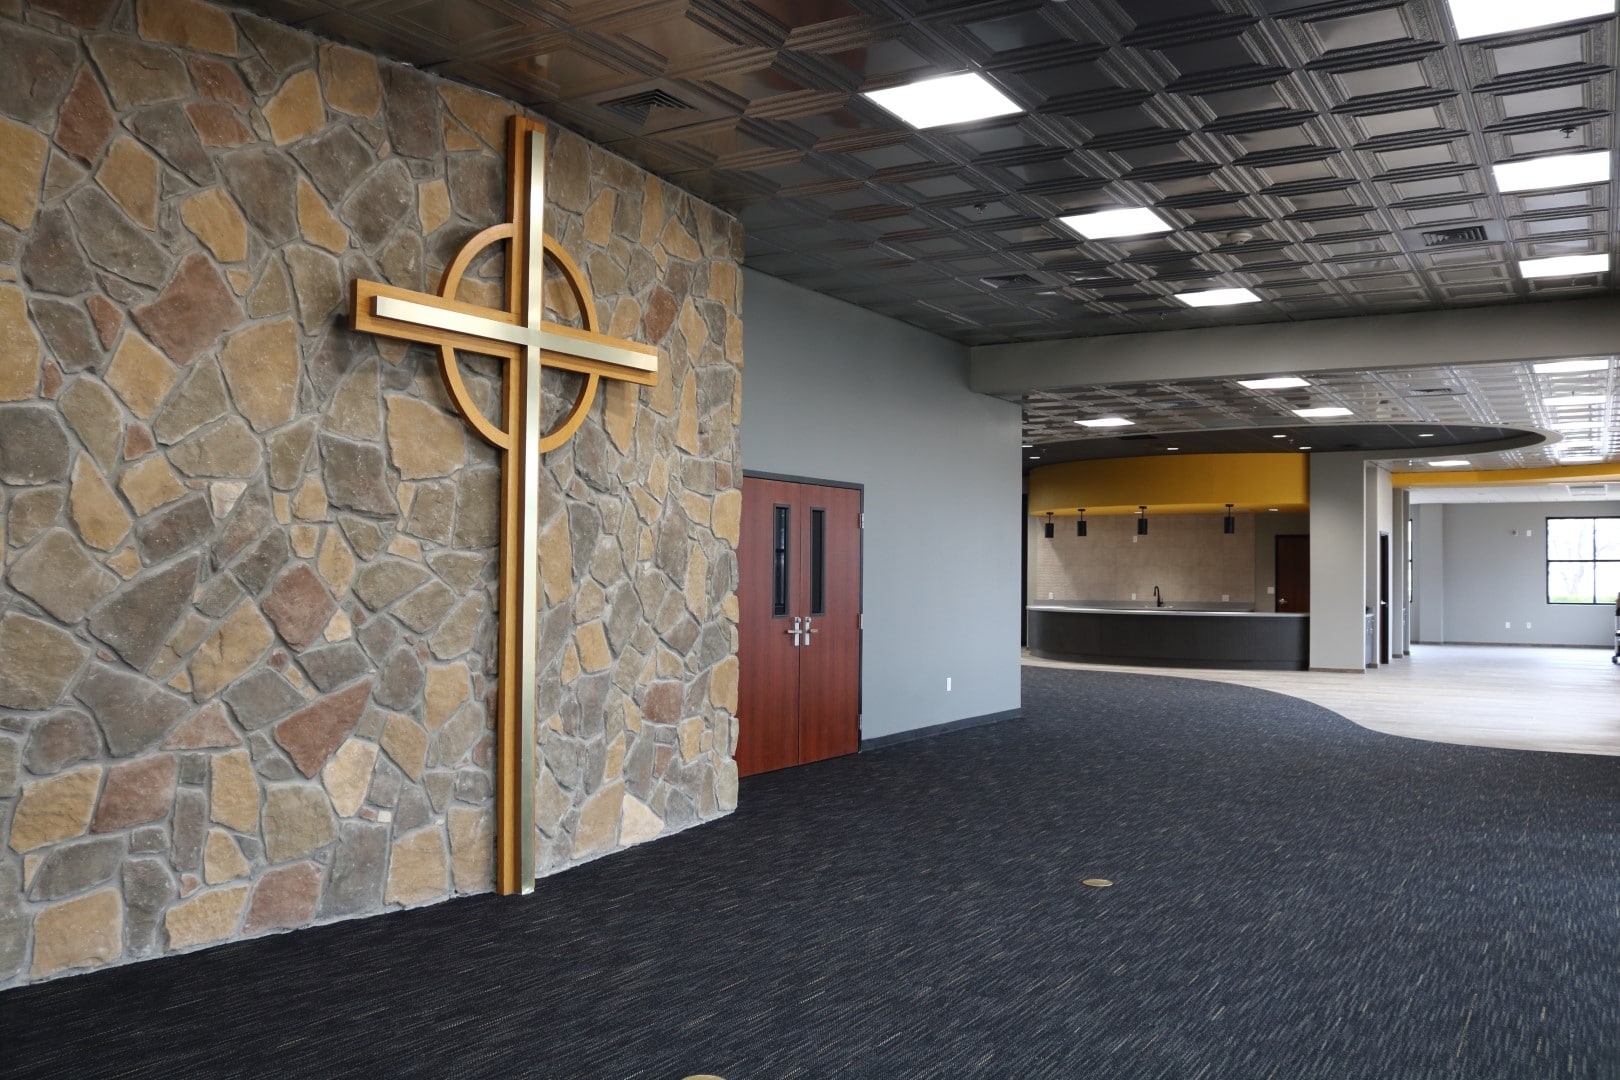 VERTEX Tenant Improvement Contracting, Lighthouse Fellowship Church and Christian Academy, 46052